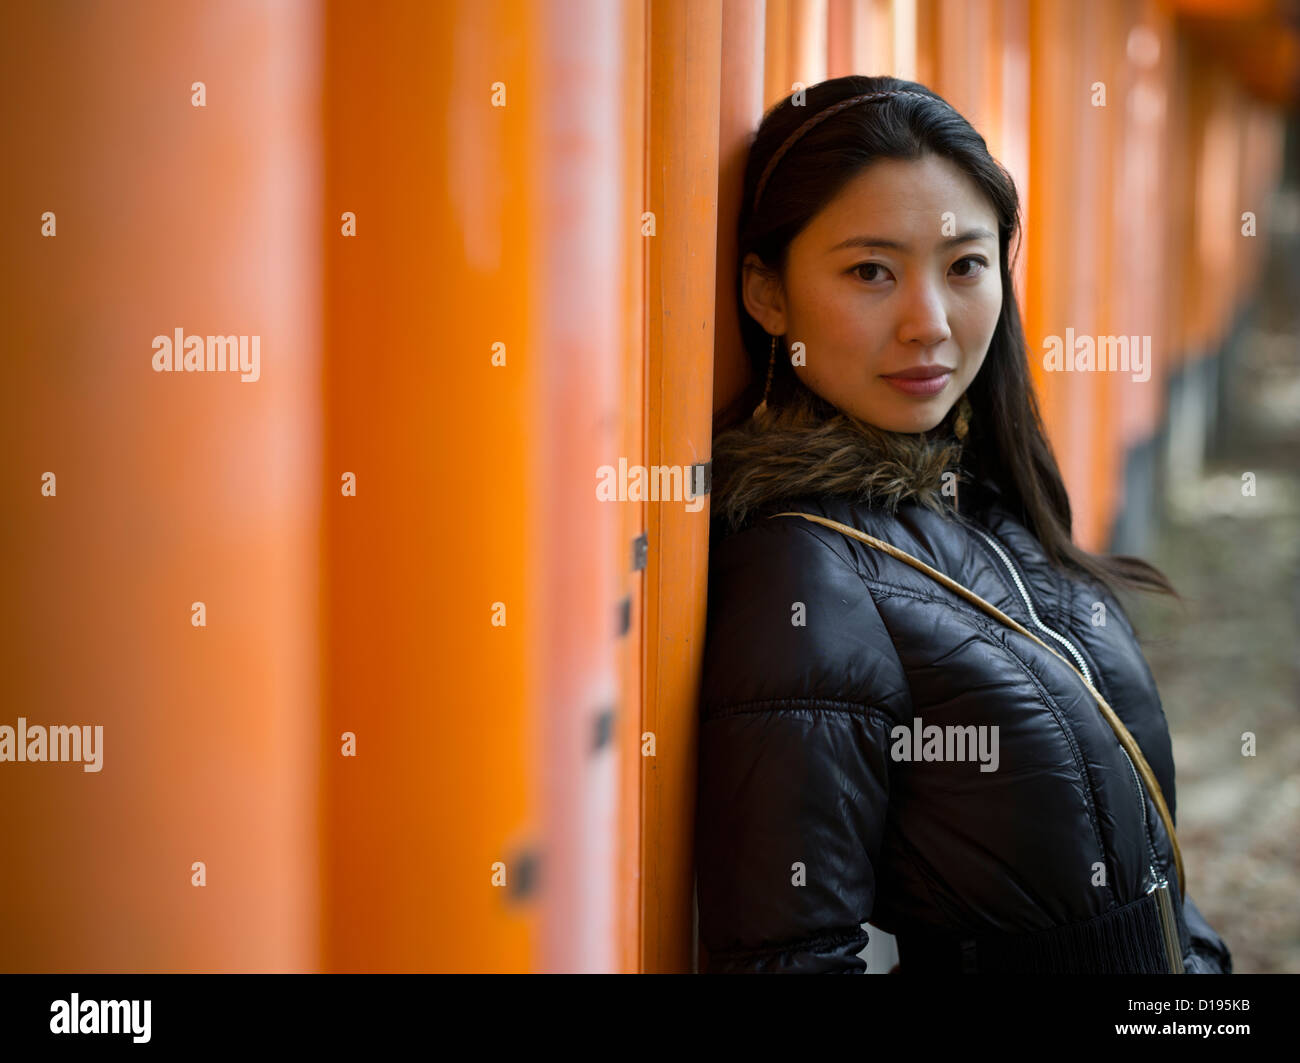 Japanese woman visiting Fushimi Inari Taisha a shinto shrine with orange torii gates in Kyoto, Japan. - Stock Image